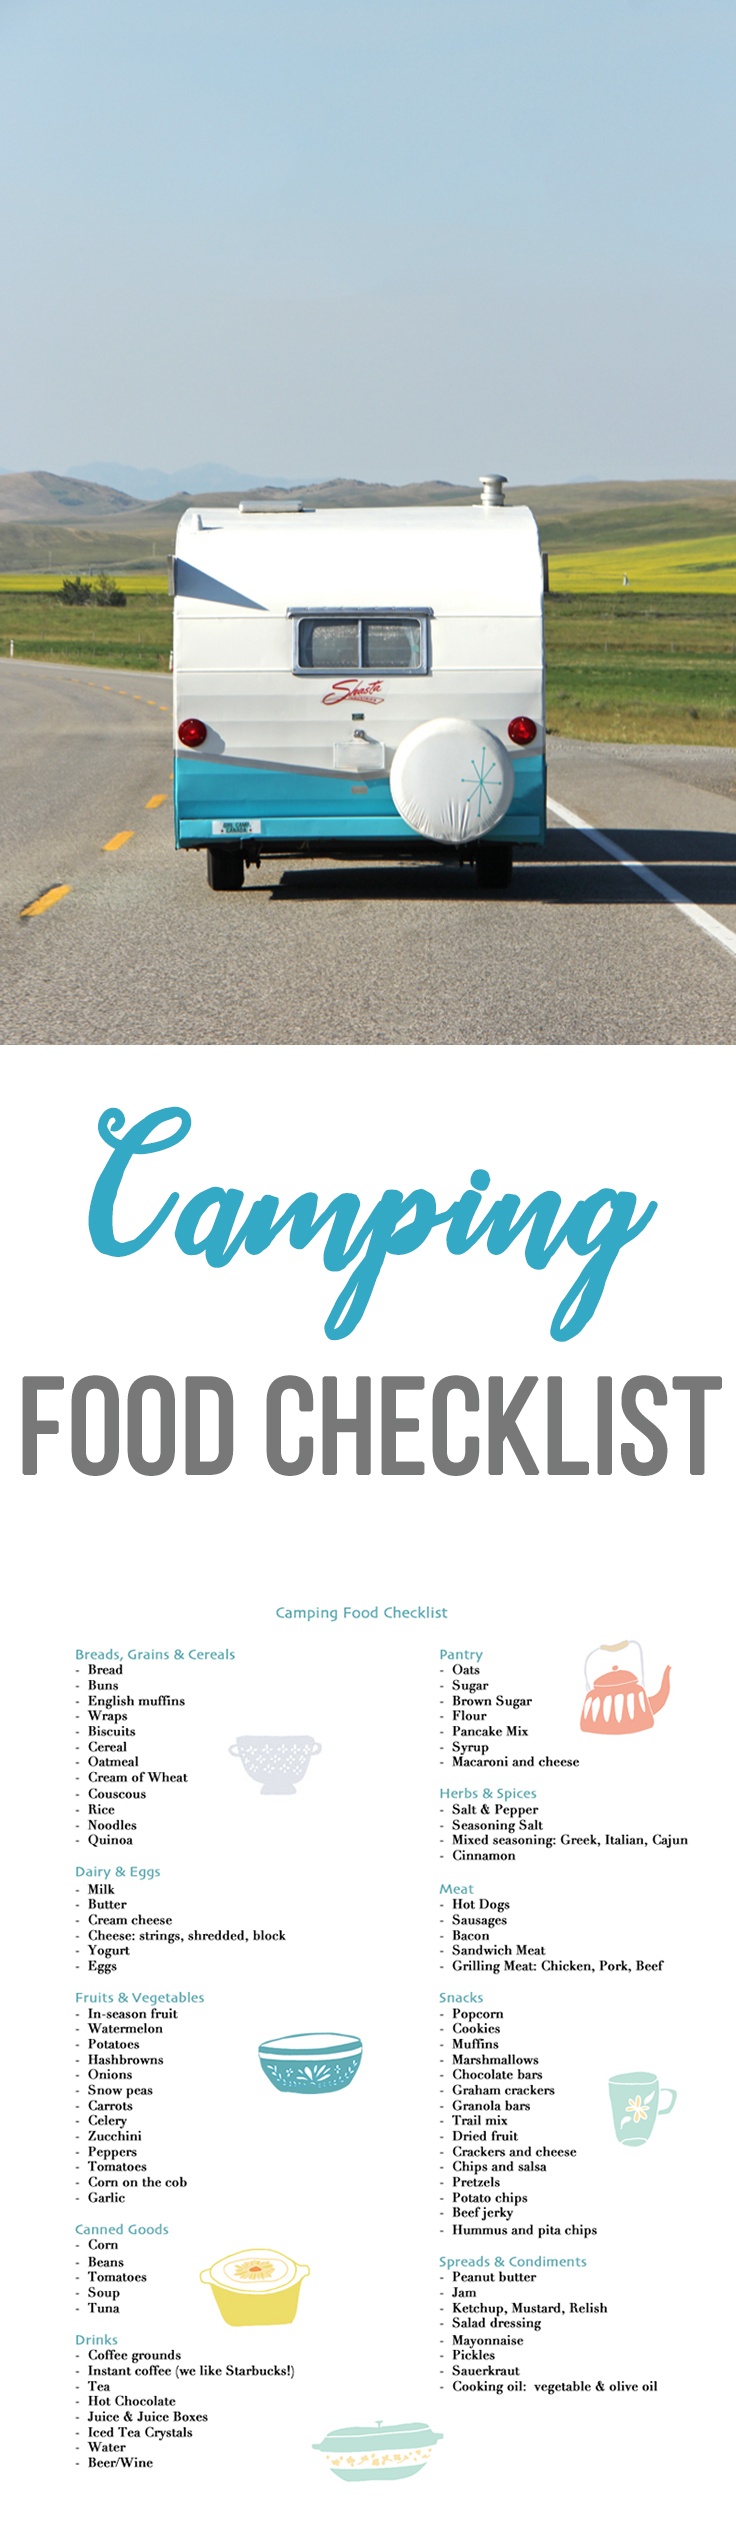 photo relating to Camping Food List Printable called Tenting Foods Record - A Really Daily life Inside The Suburbs